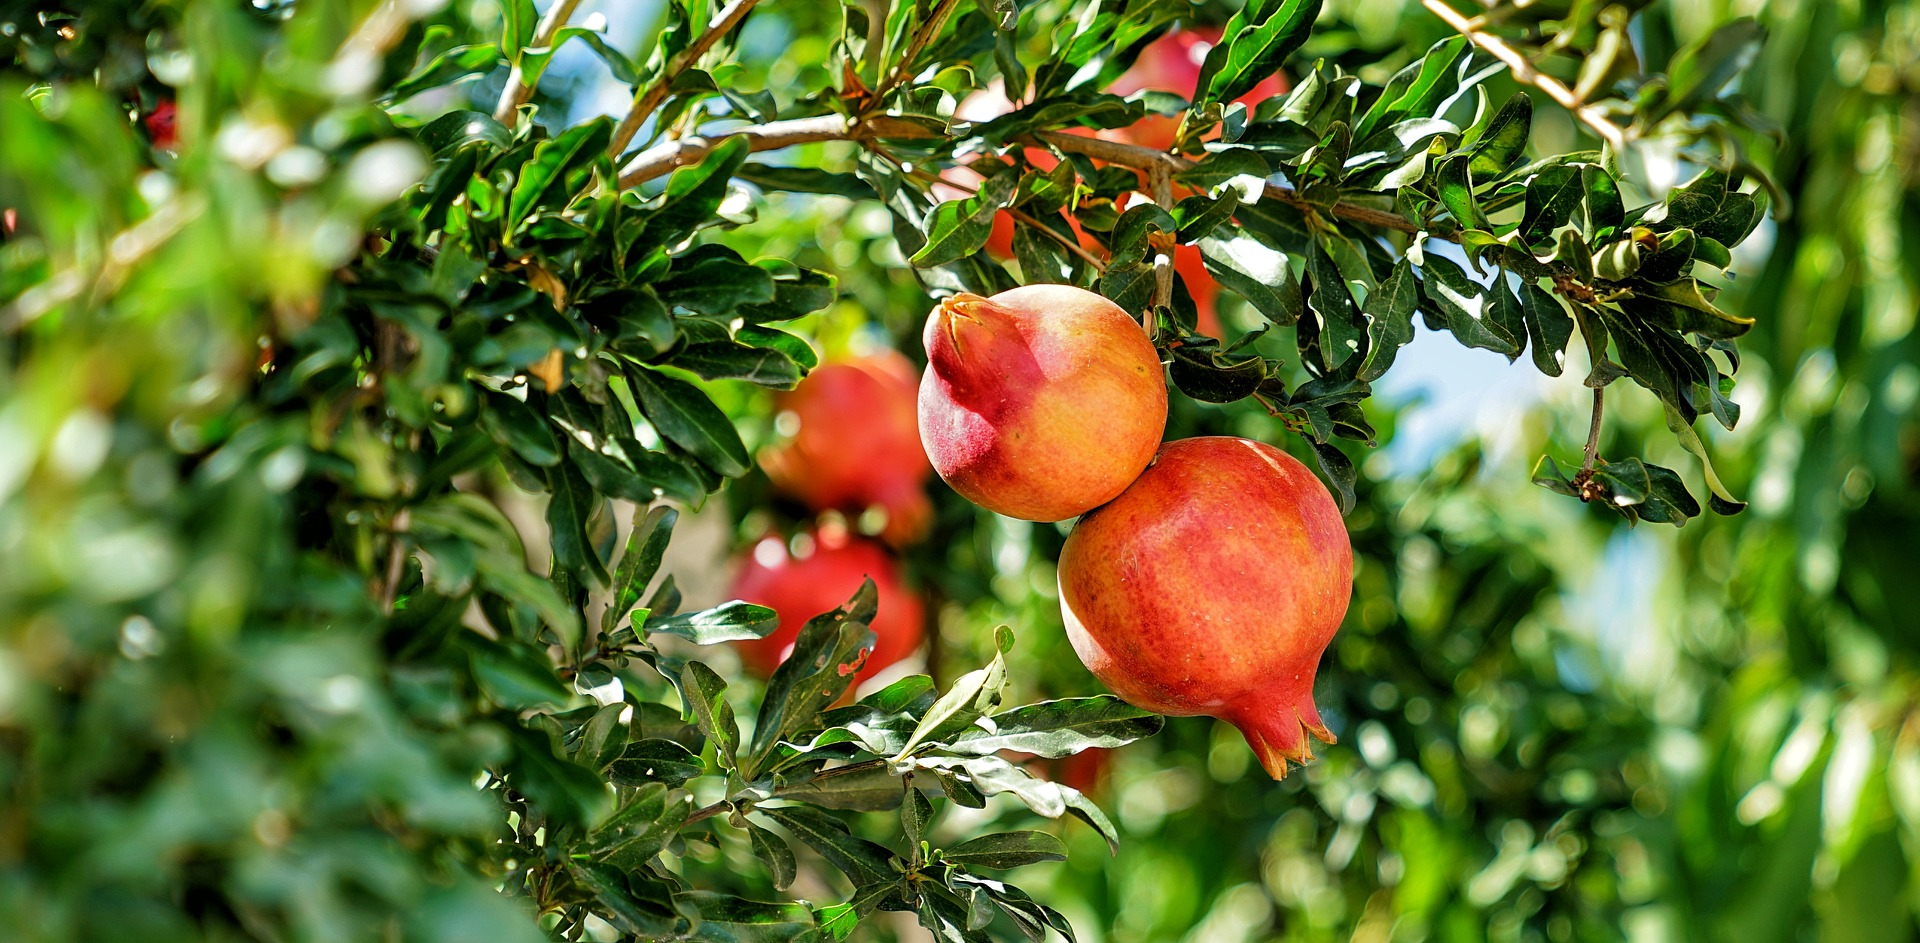 Indigo Total Produce, pomegranate importer and distributor in France